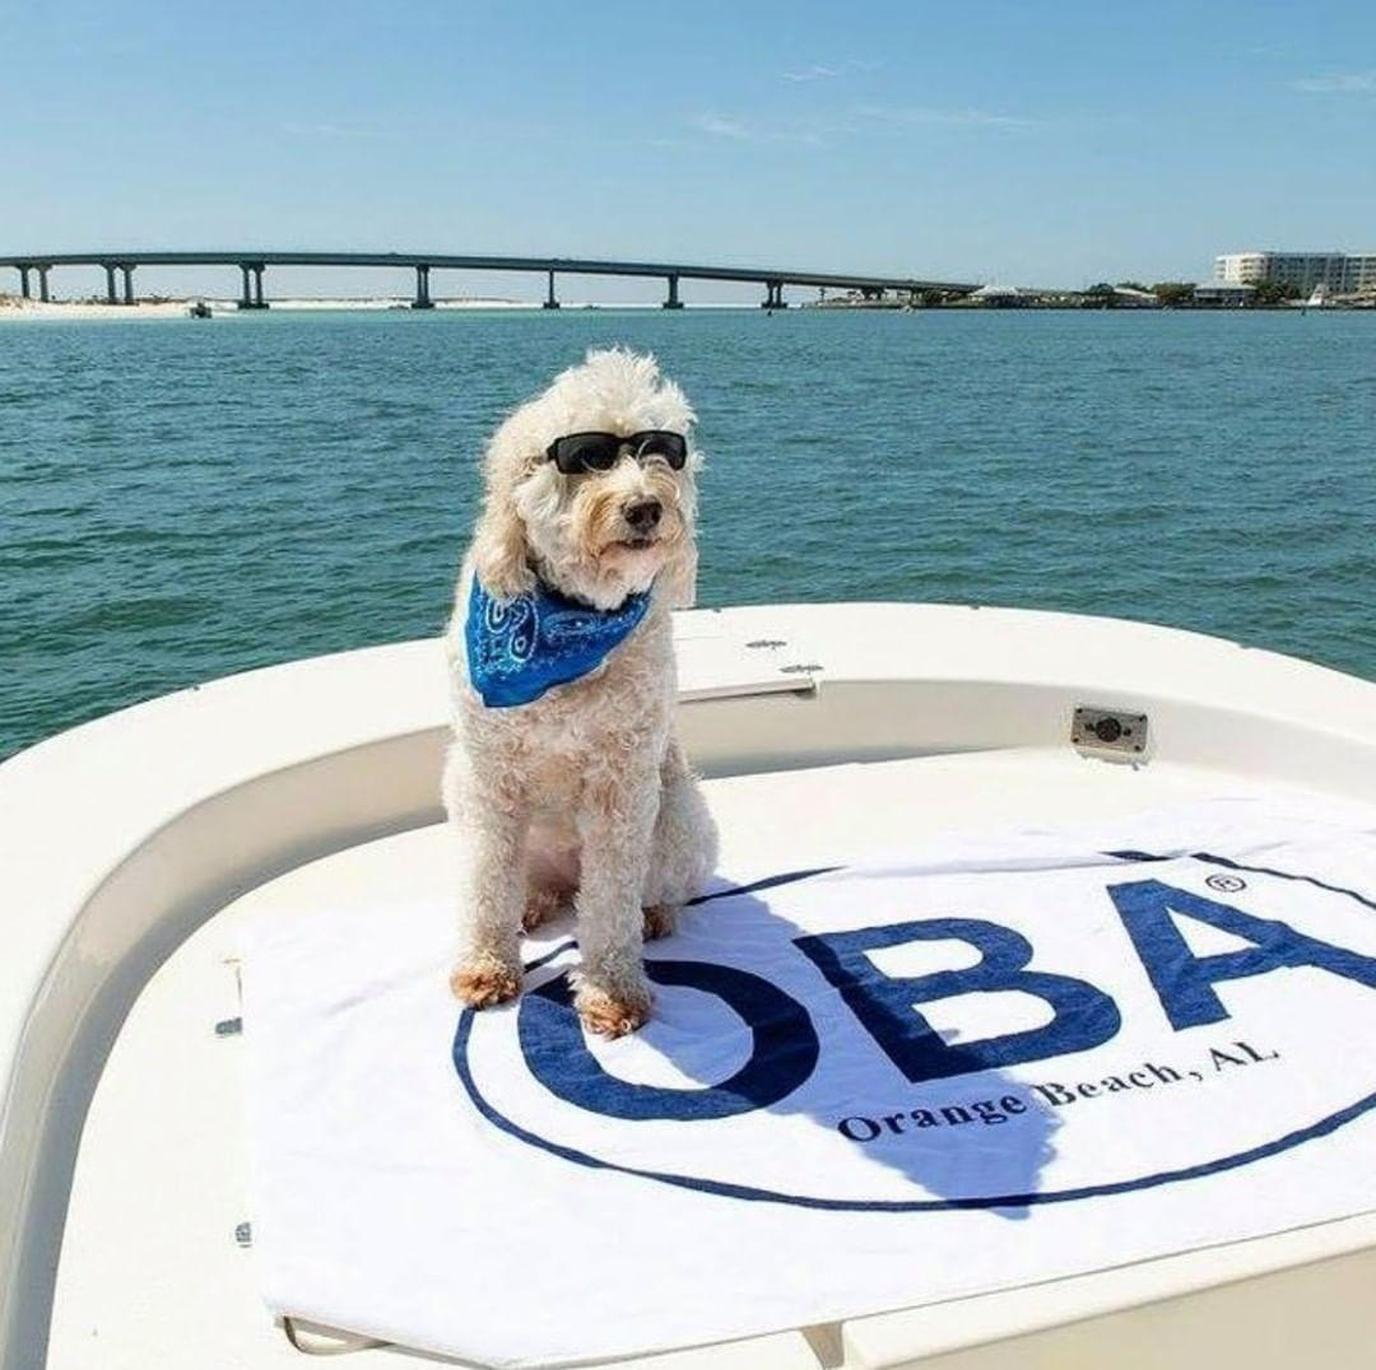 A Dog Wears a Bandanna and Sunglasses While Sitting on a White Boat in the Ocean.